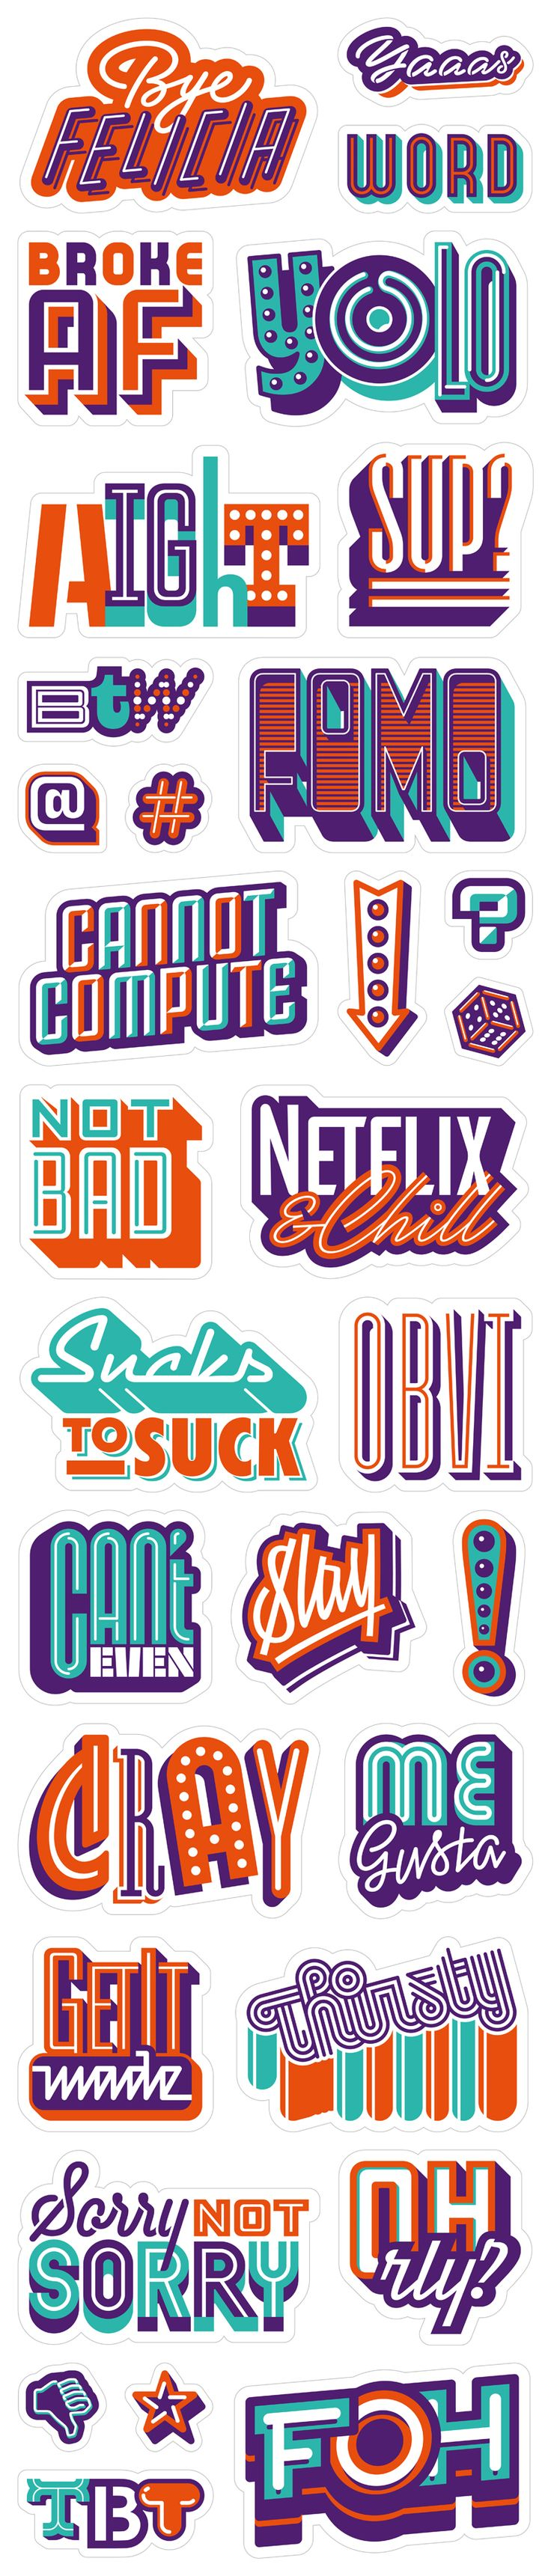 Viber | Sticker pack on Behance  This is a cool design: using type art and giving it a sticker feel.